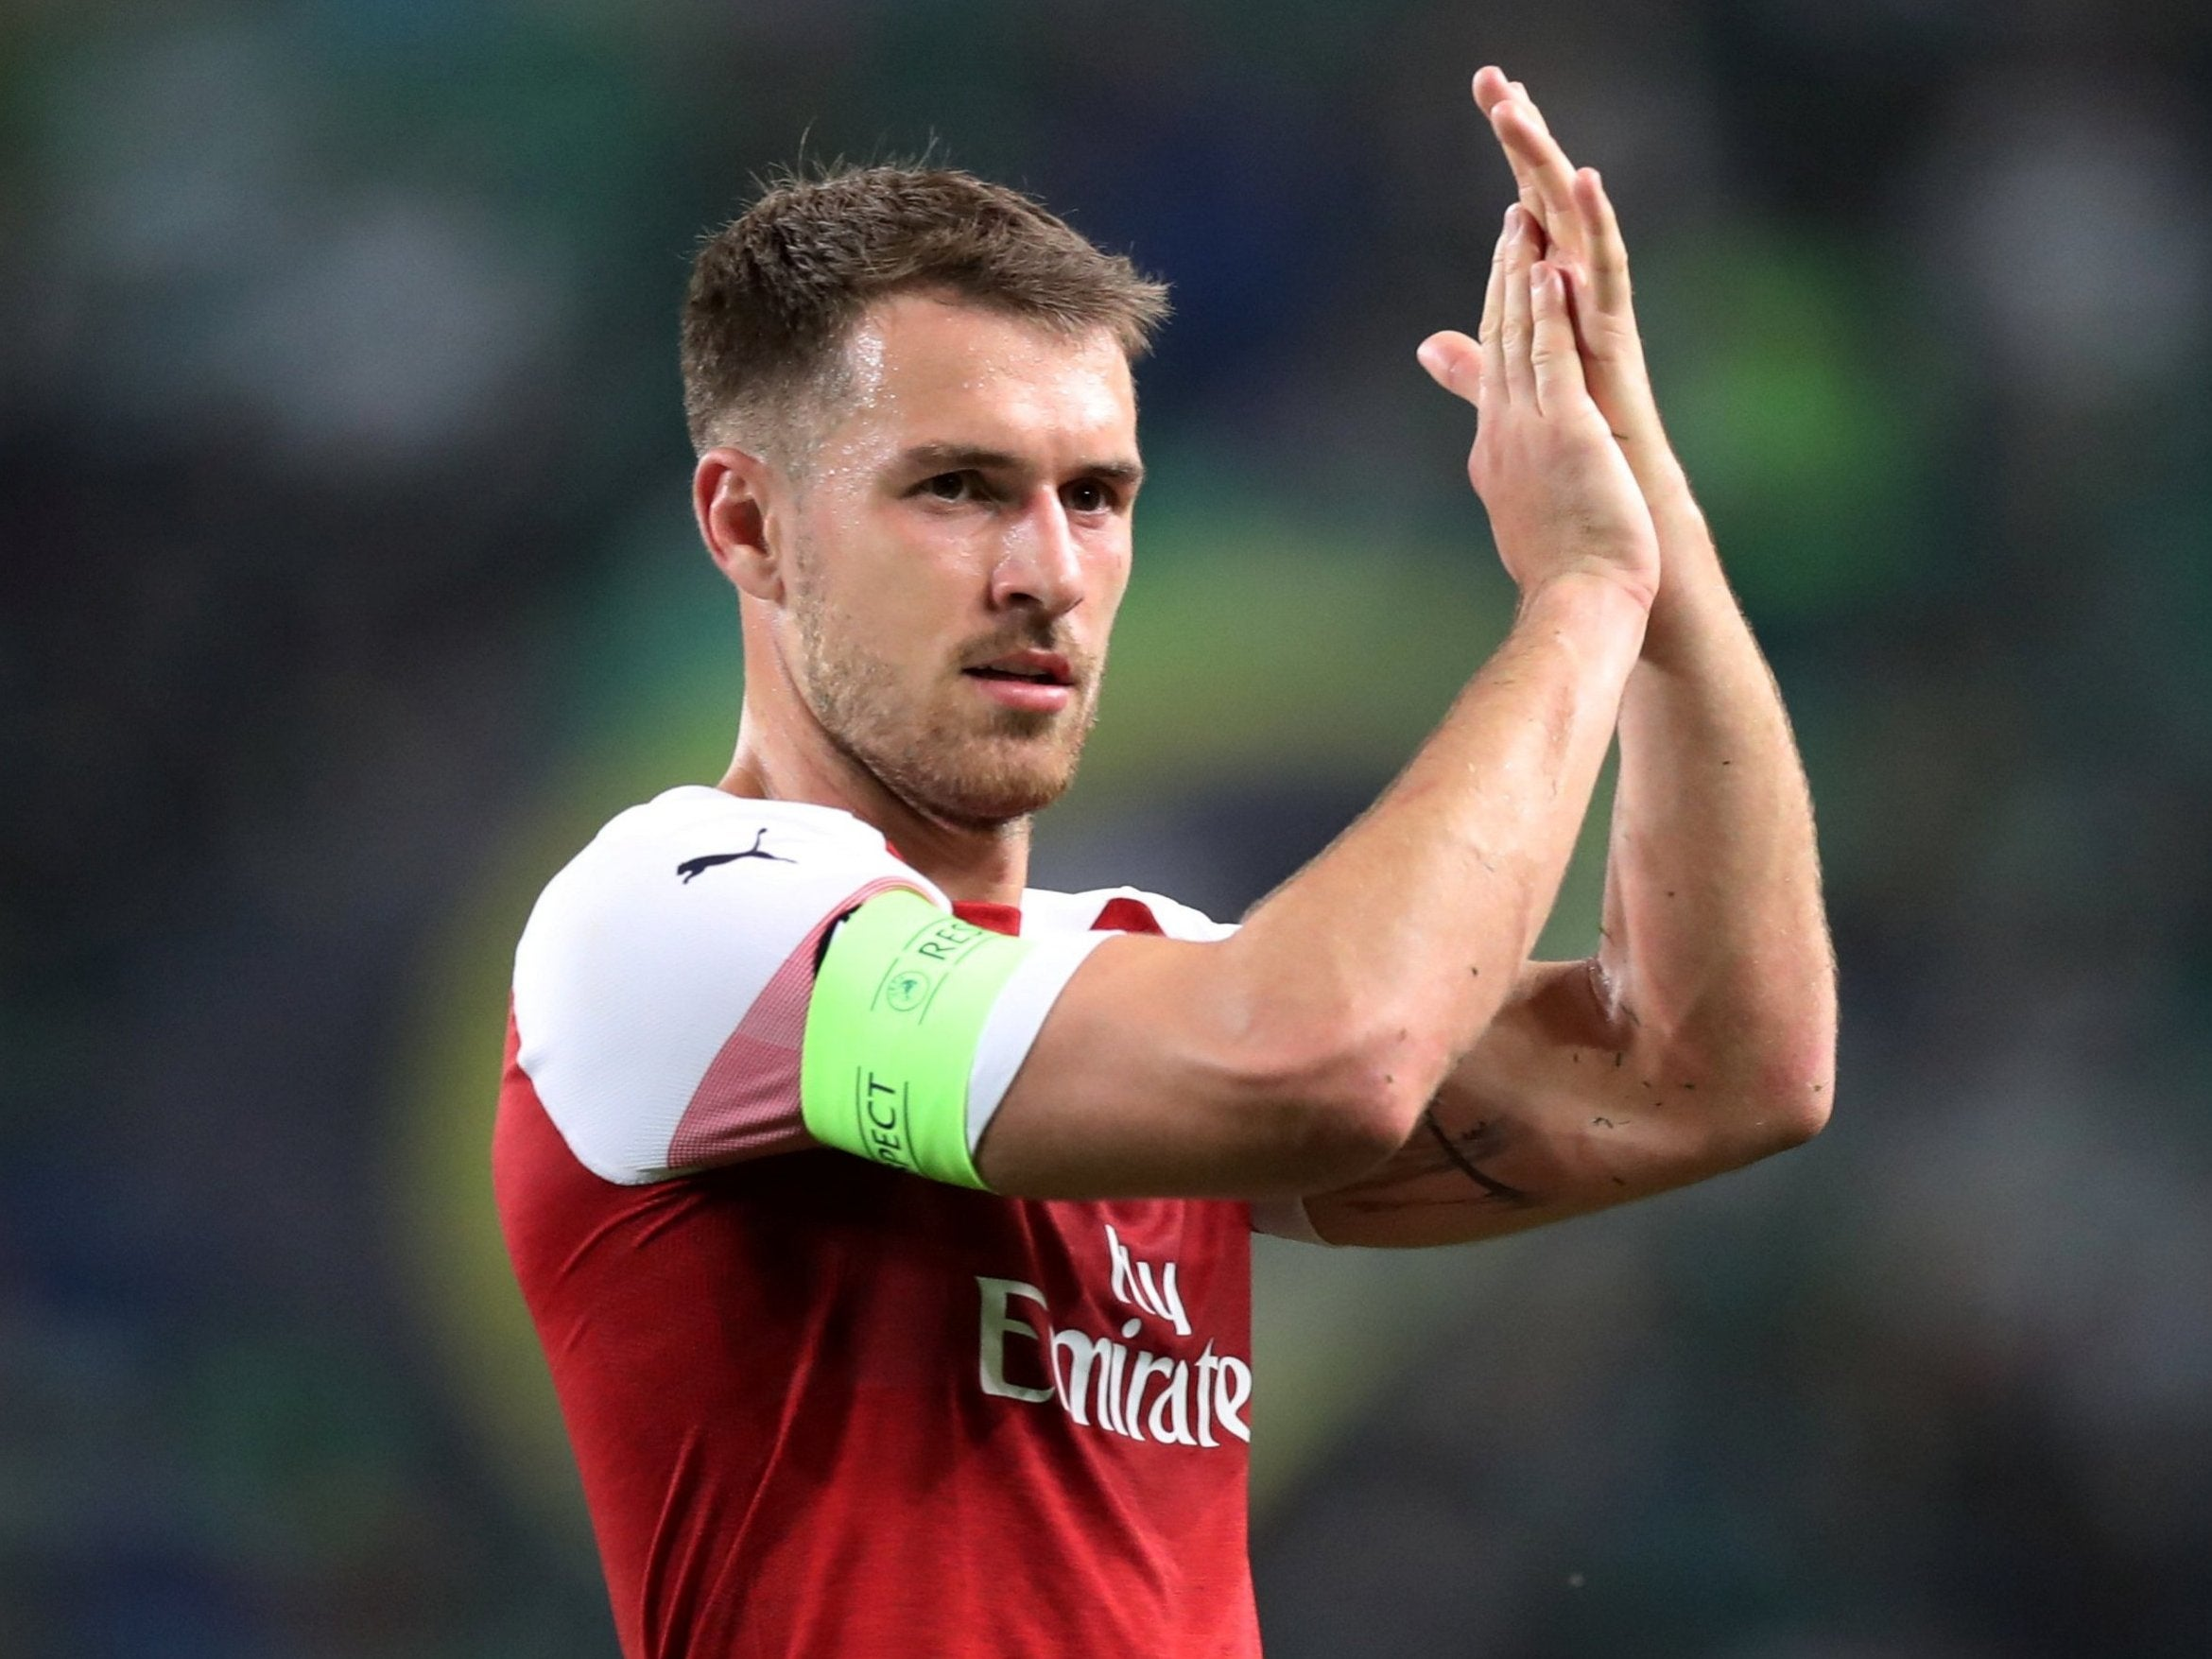 Arsenal transfer news: Bayern Munich confident they have won the race for Aaron Ramsey